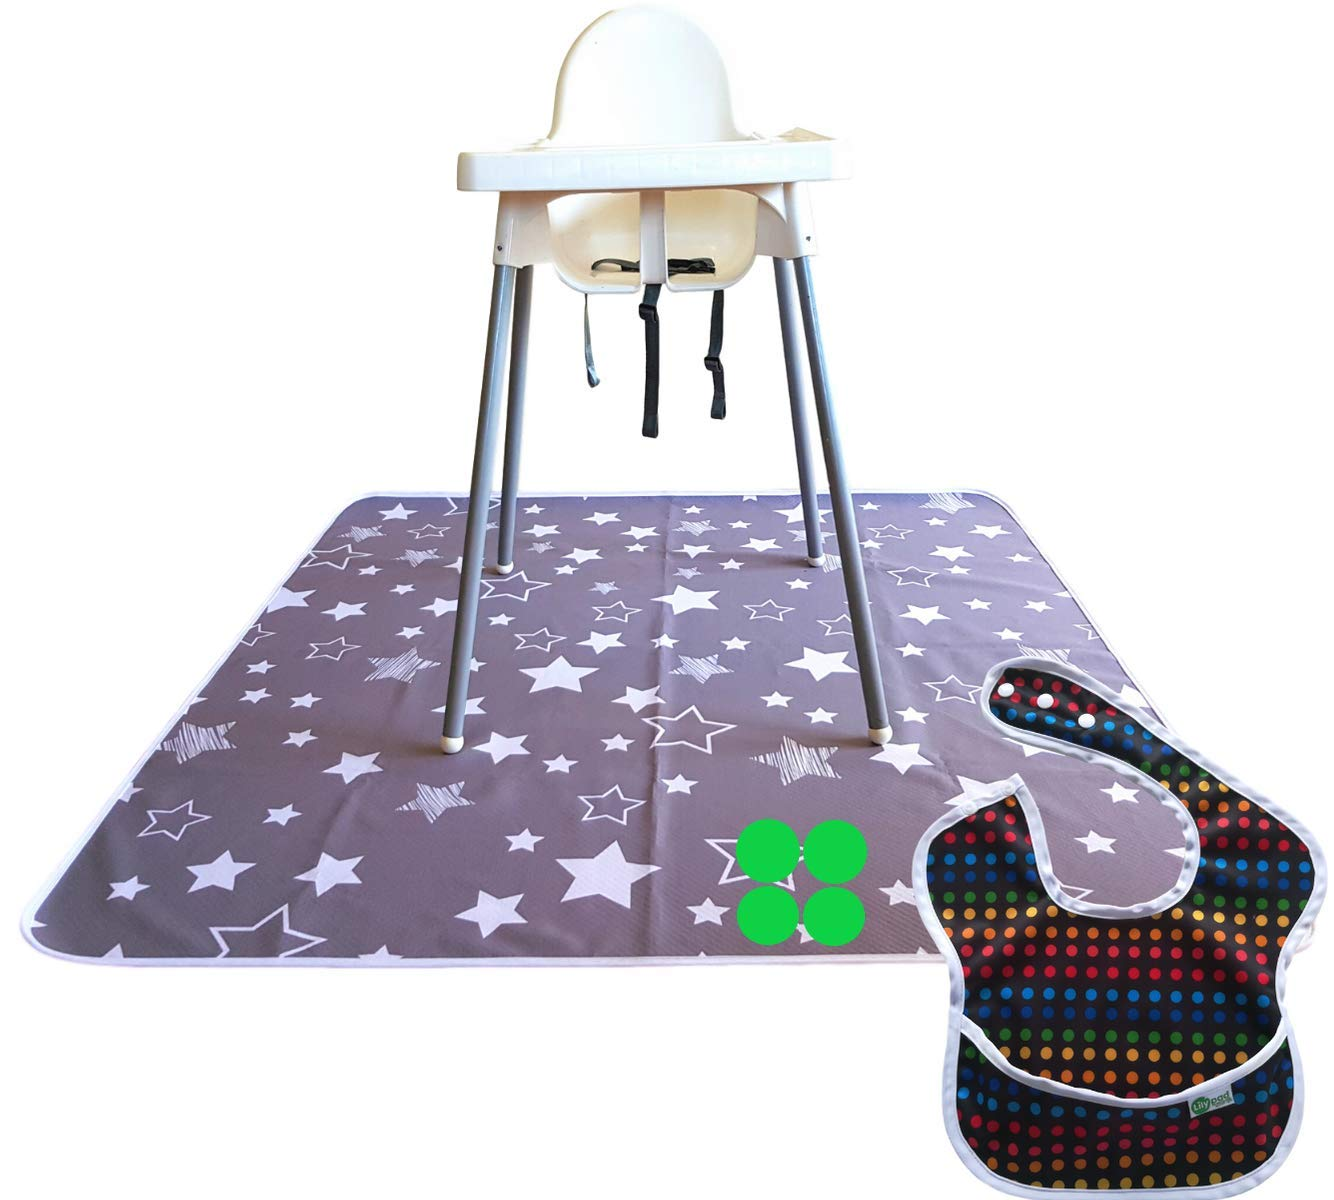 Machine Washable Non-Slip LILY PAD /& LITTLE MR Splat Mat for Under High Chair Non Bunching Floor Mess Protector 51 Baby Floor Mat and Baby Bib Grey Stars 100/% Waterproof